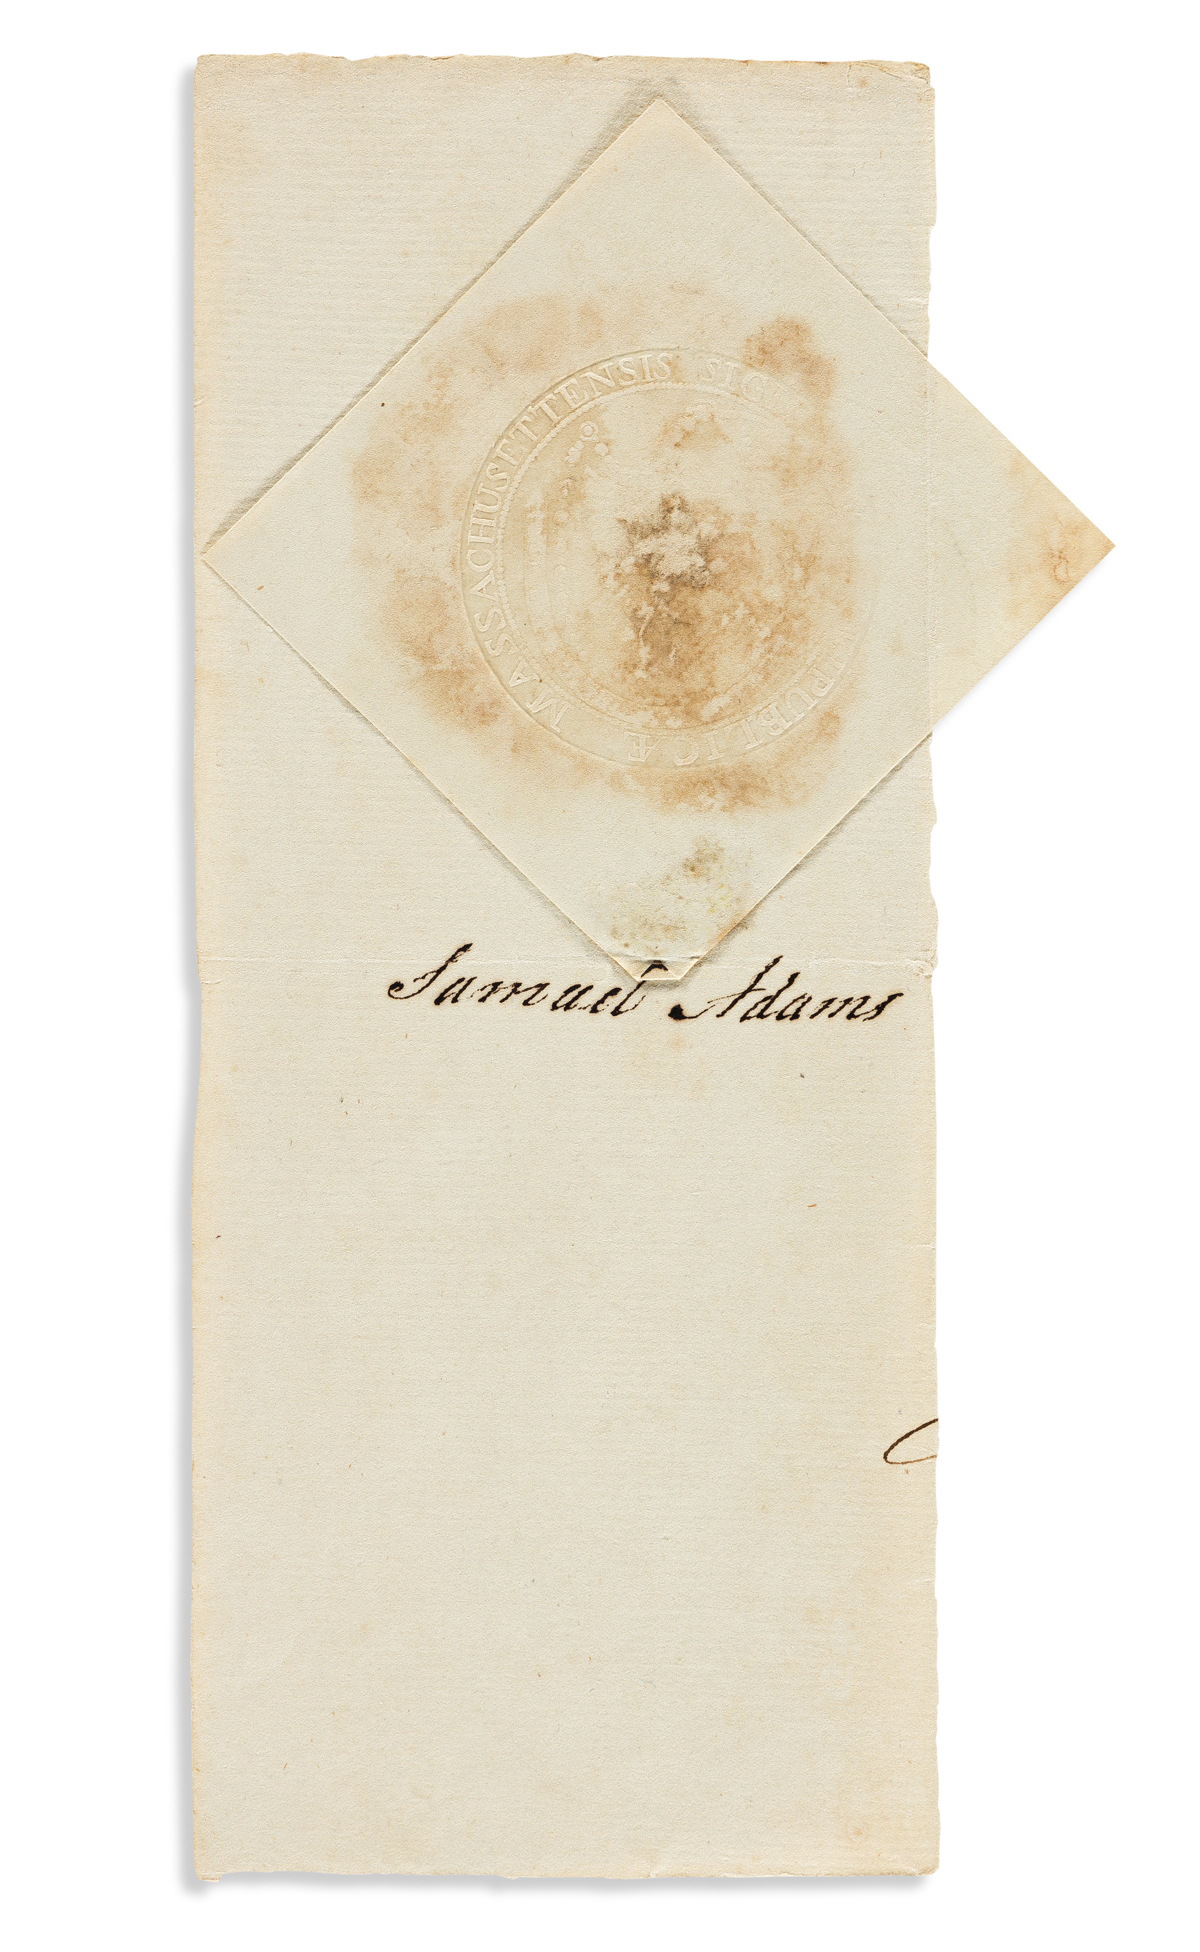 ADAMS, SAMUEL. Clipped Signature, on a fragment of a document,